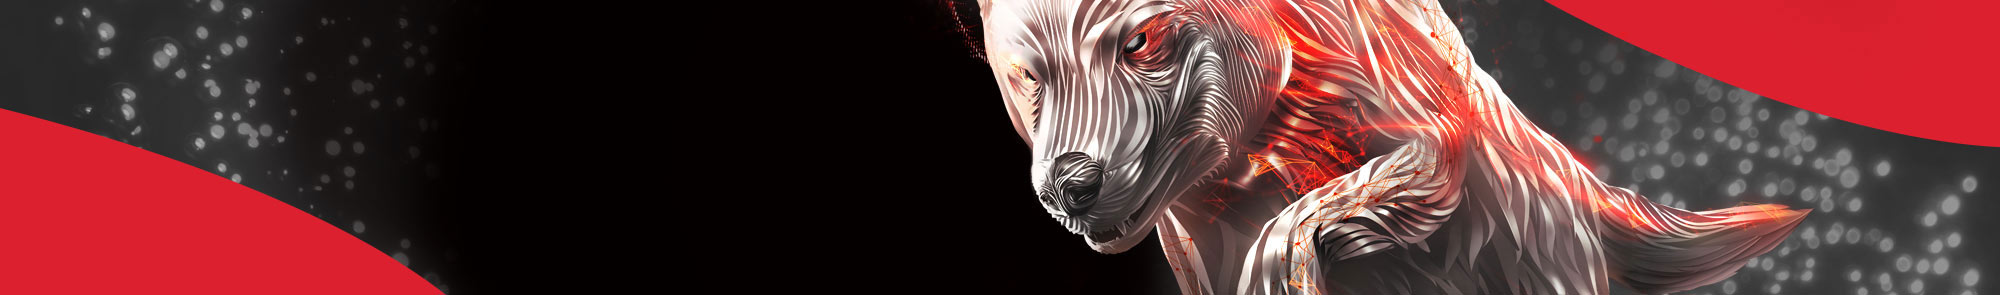 Promotional banner image for the Seagate IronWolf HDDs that shows an iron wolf with glowing red eyes